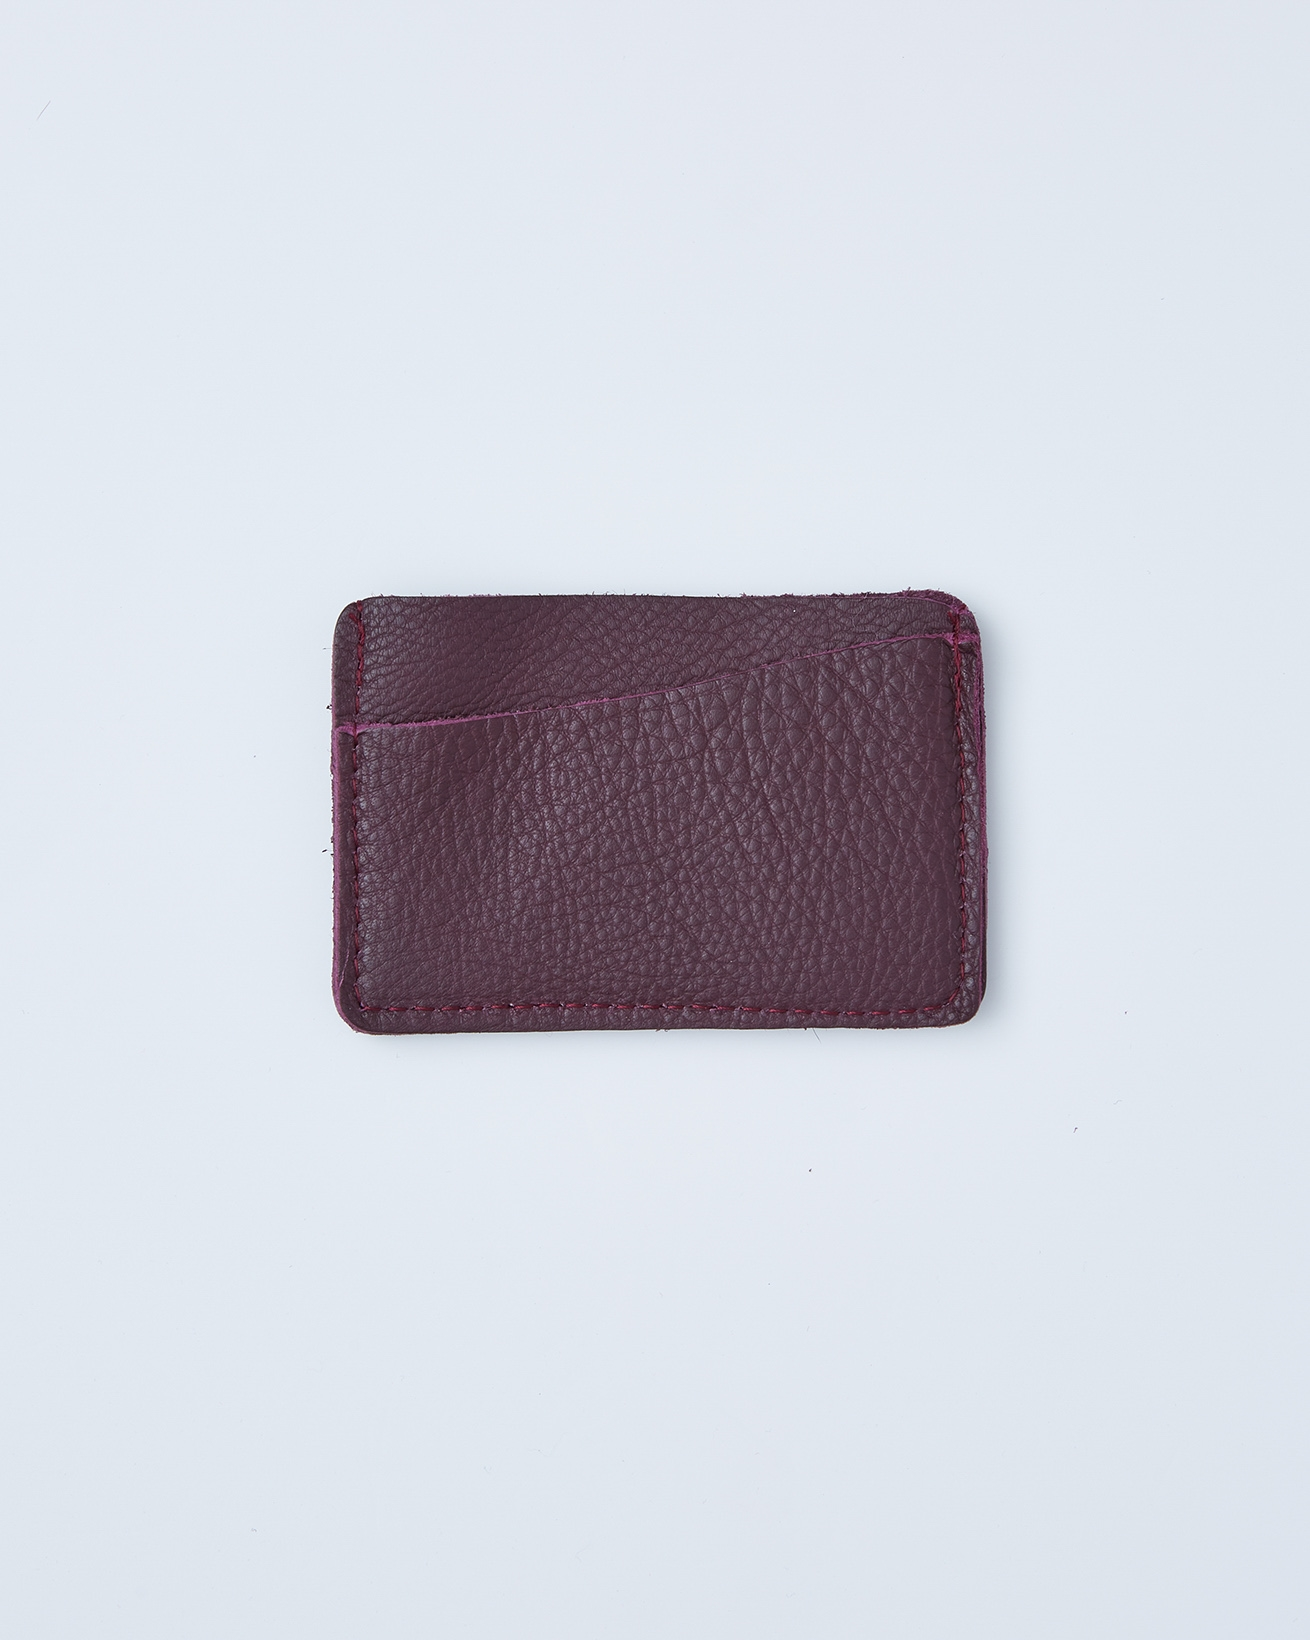 Leather Card Wallet - One/Size - Damson - 2410